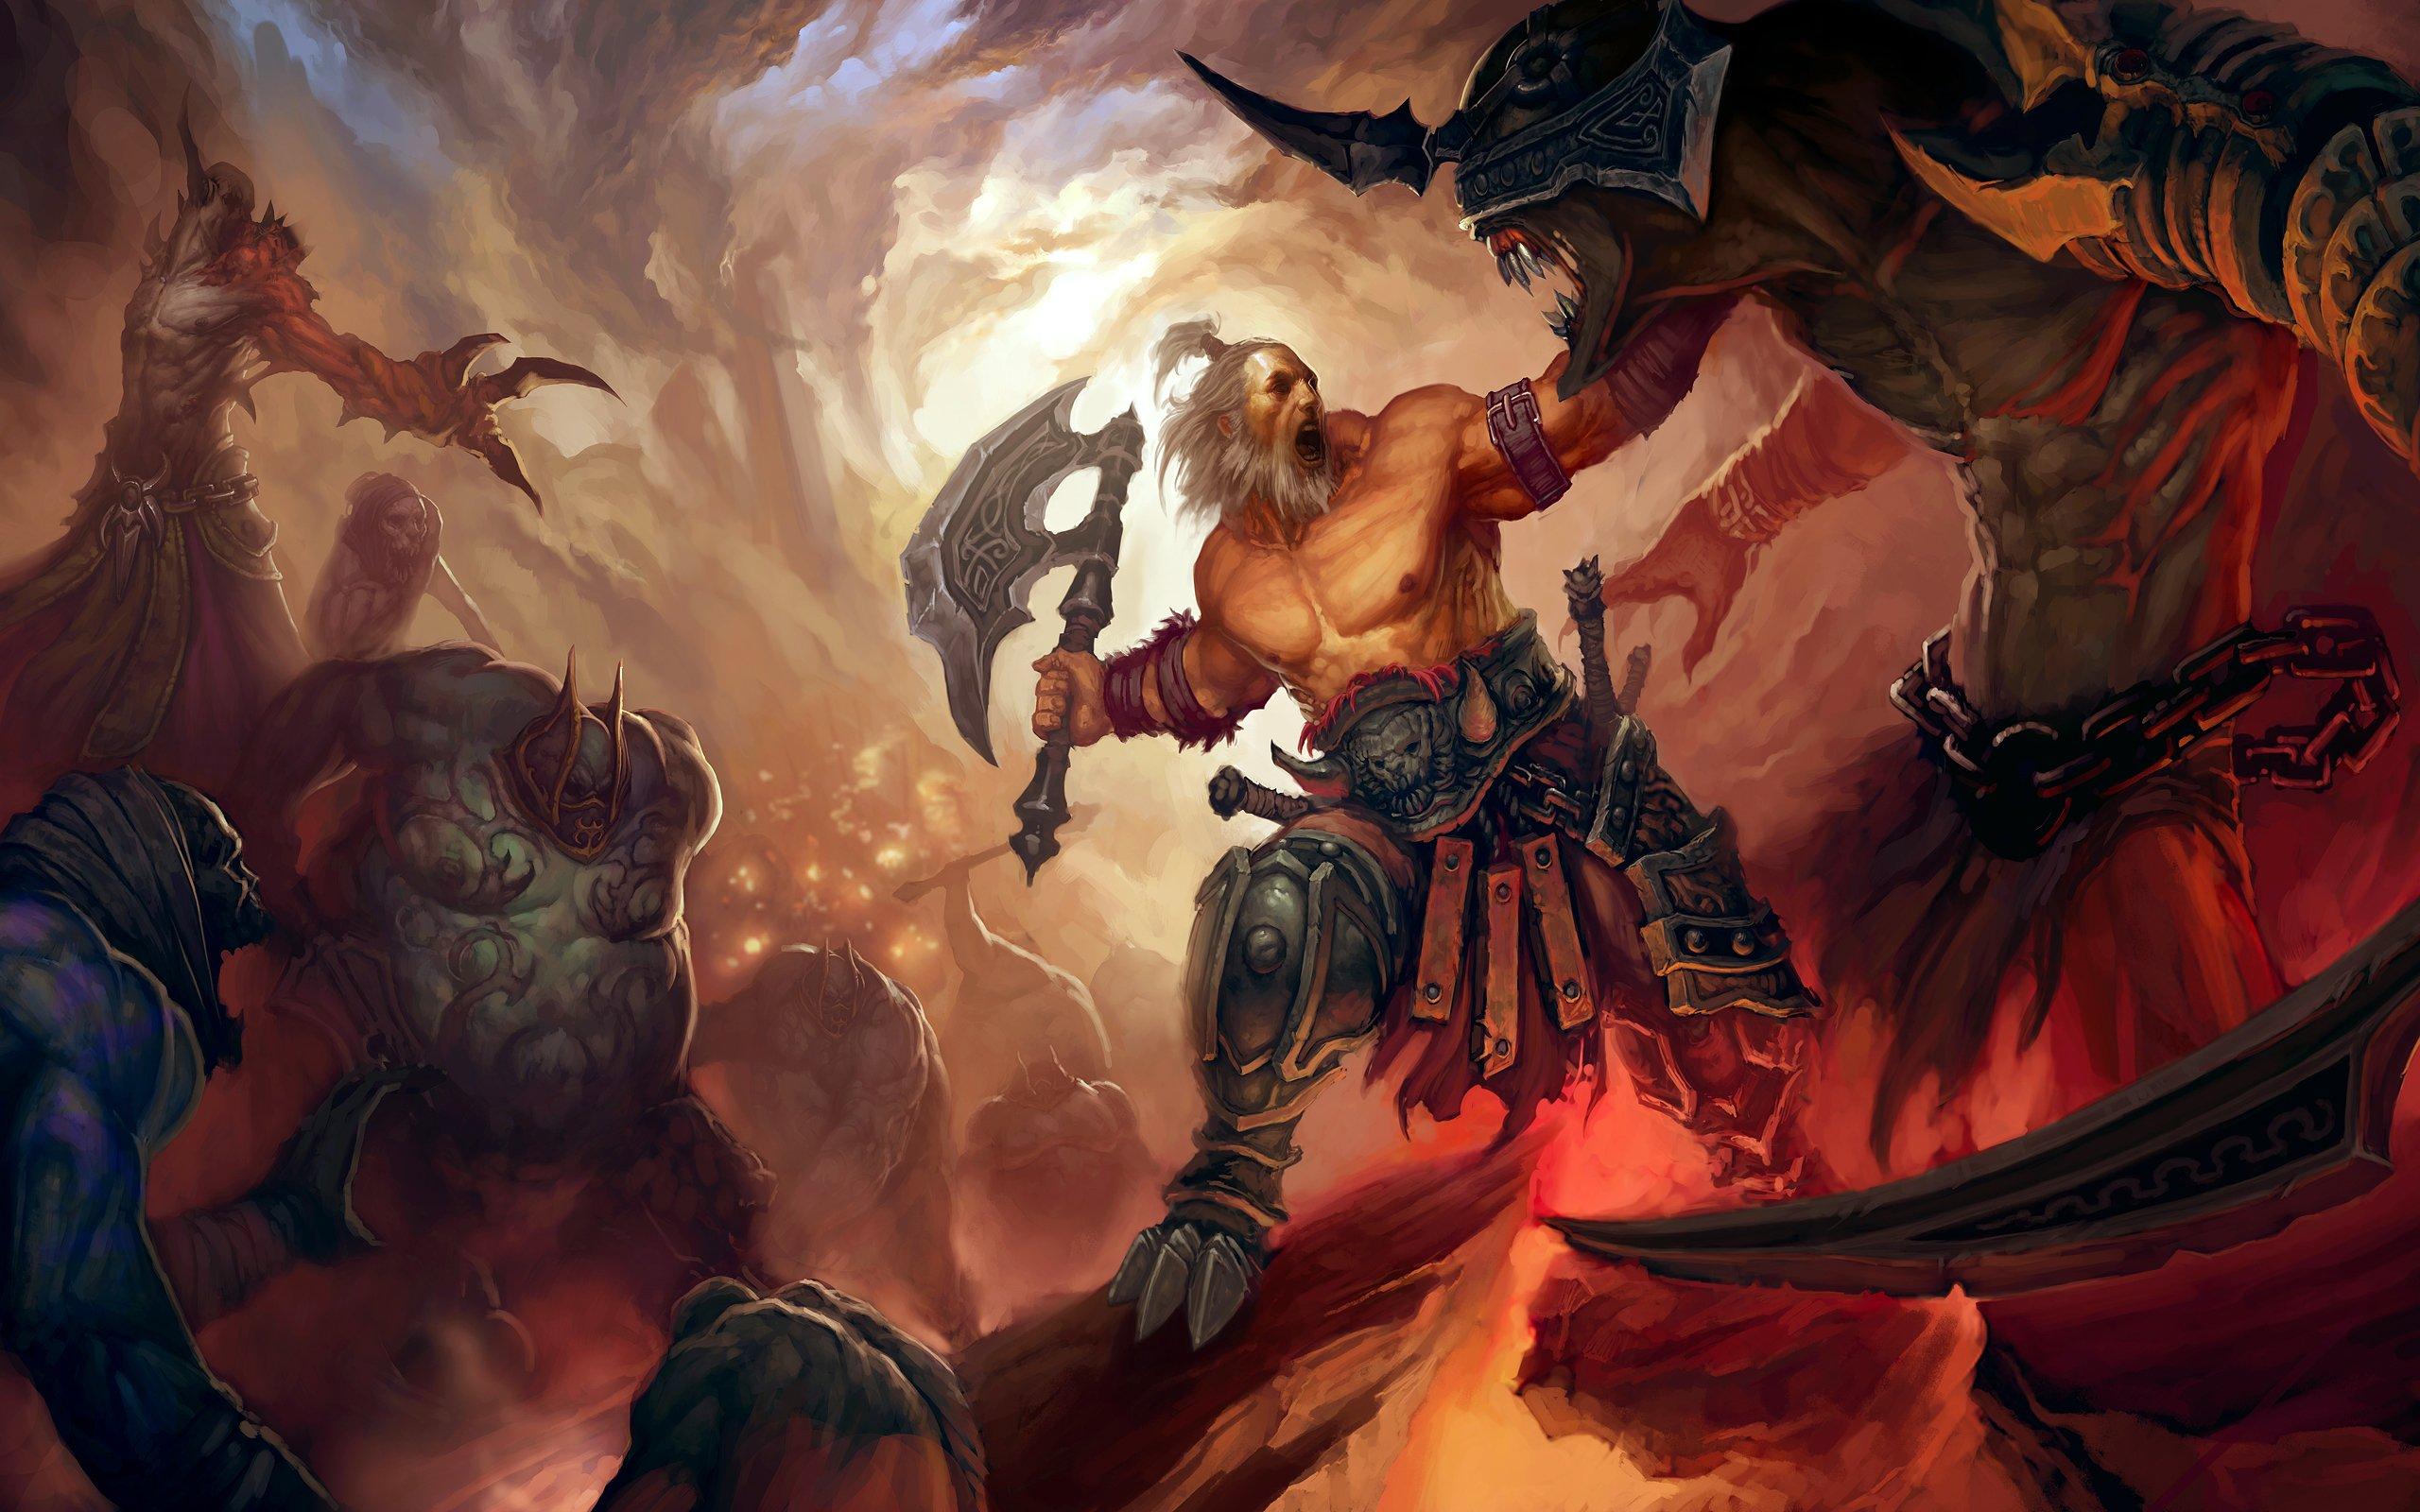 Image Diablo 3 Wallpapers And Stock Photos